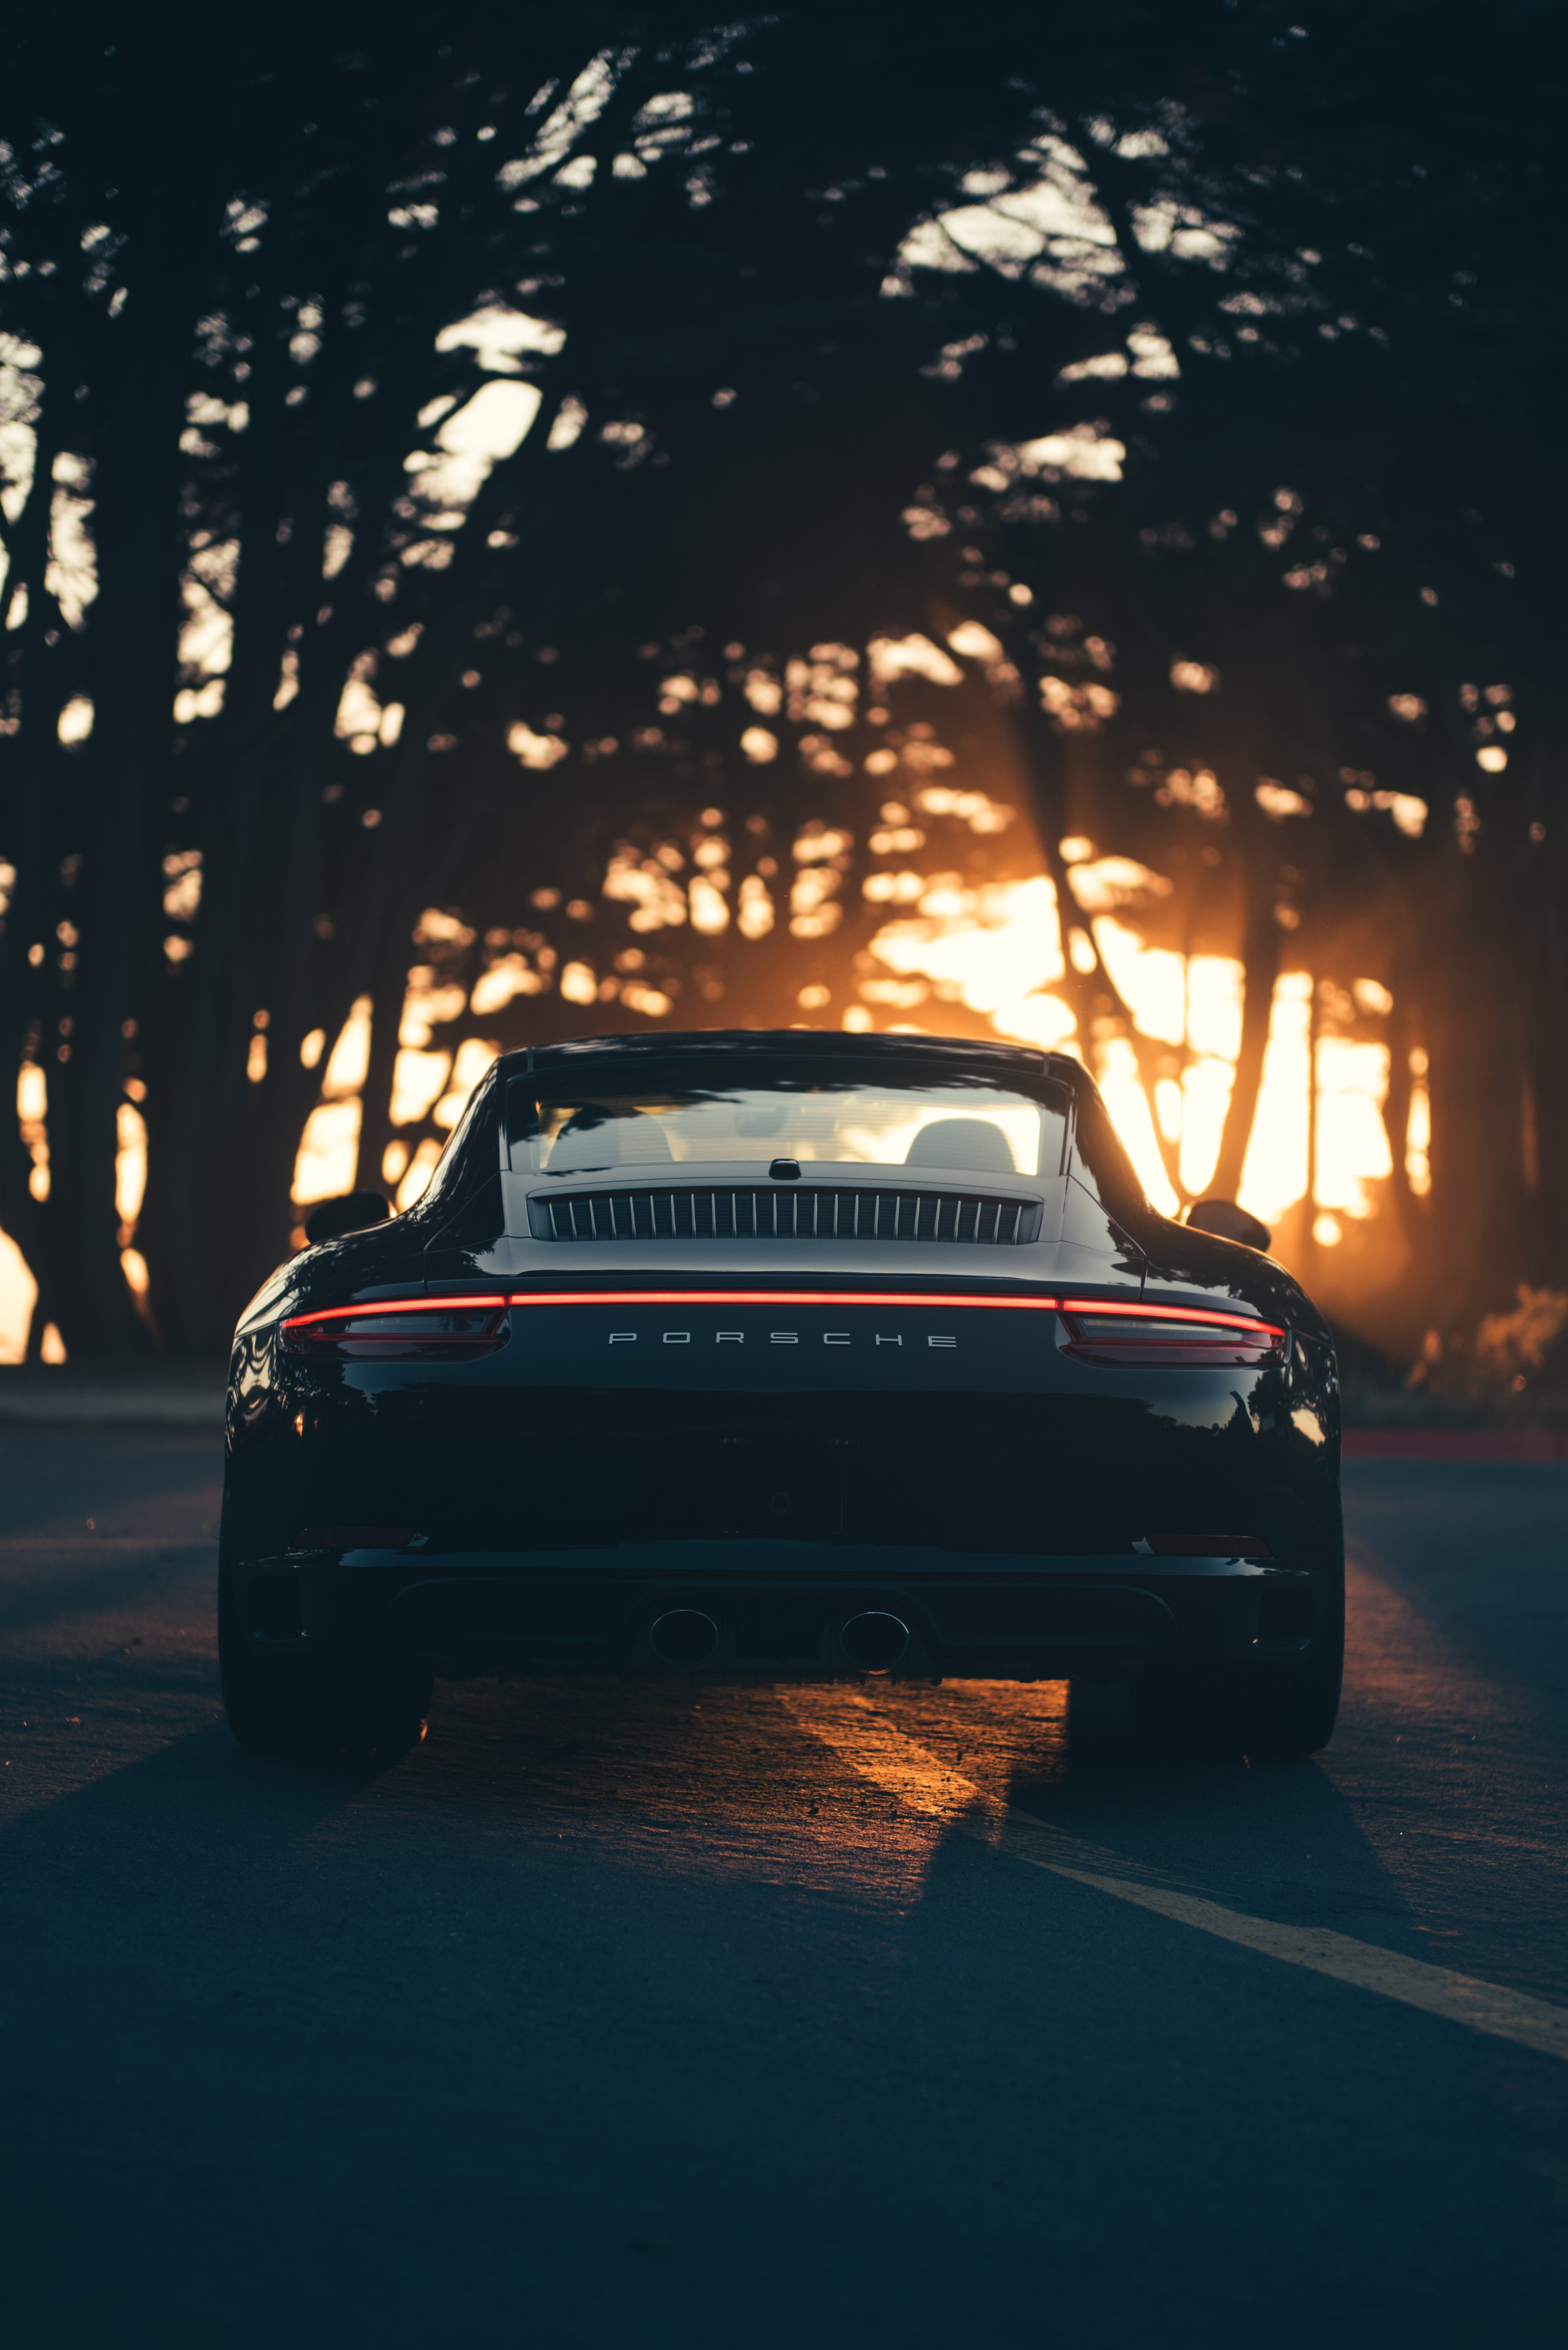 82731 download wallpaper Porsche, Sports, Cars, Sports Car, Back View, Rear View, Sunlight screensavers and pictures for free